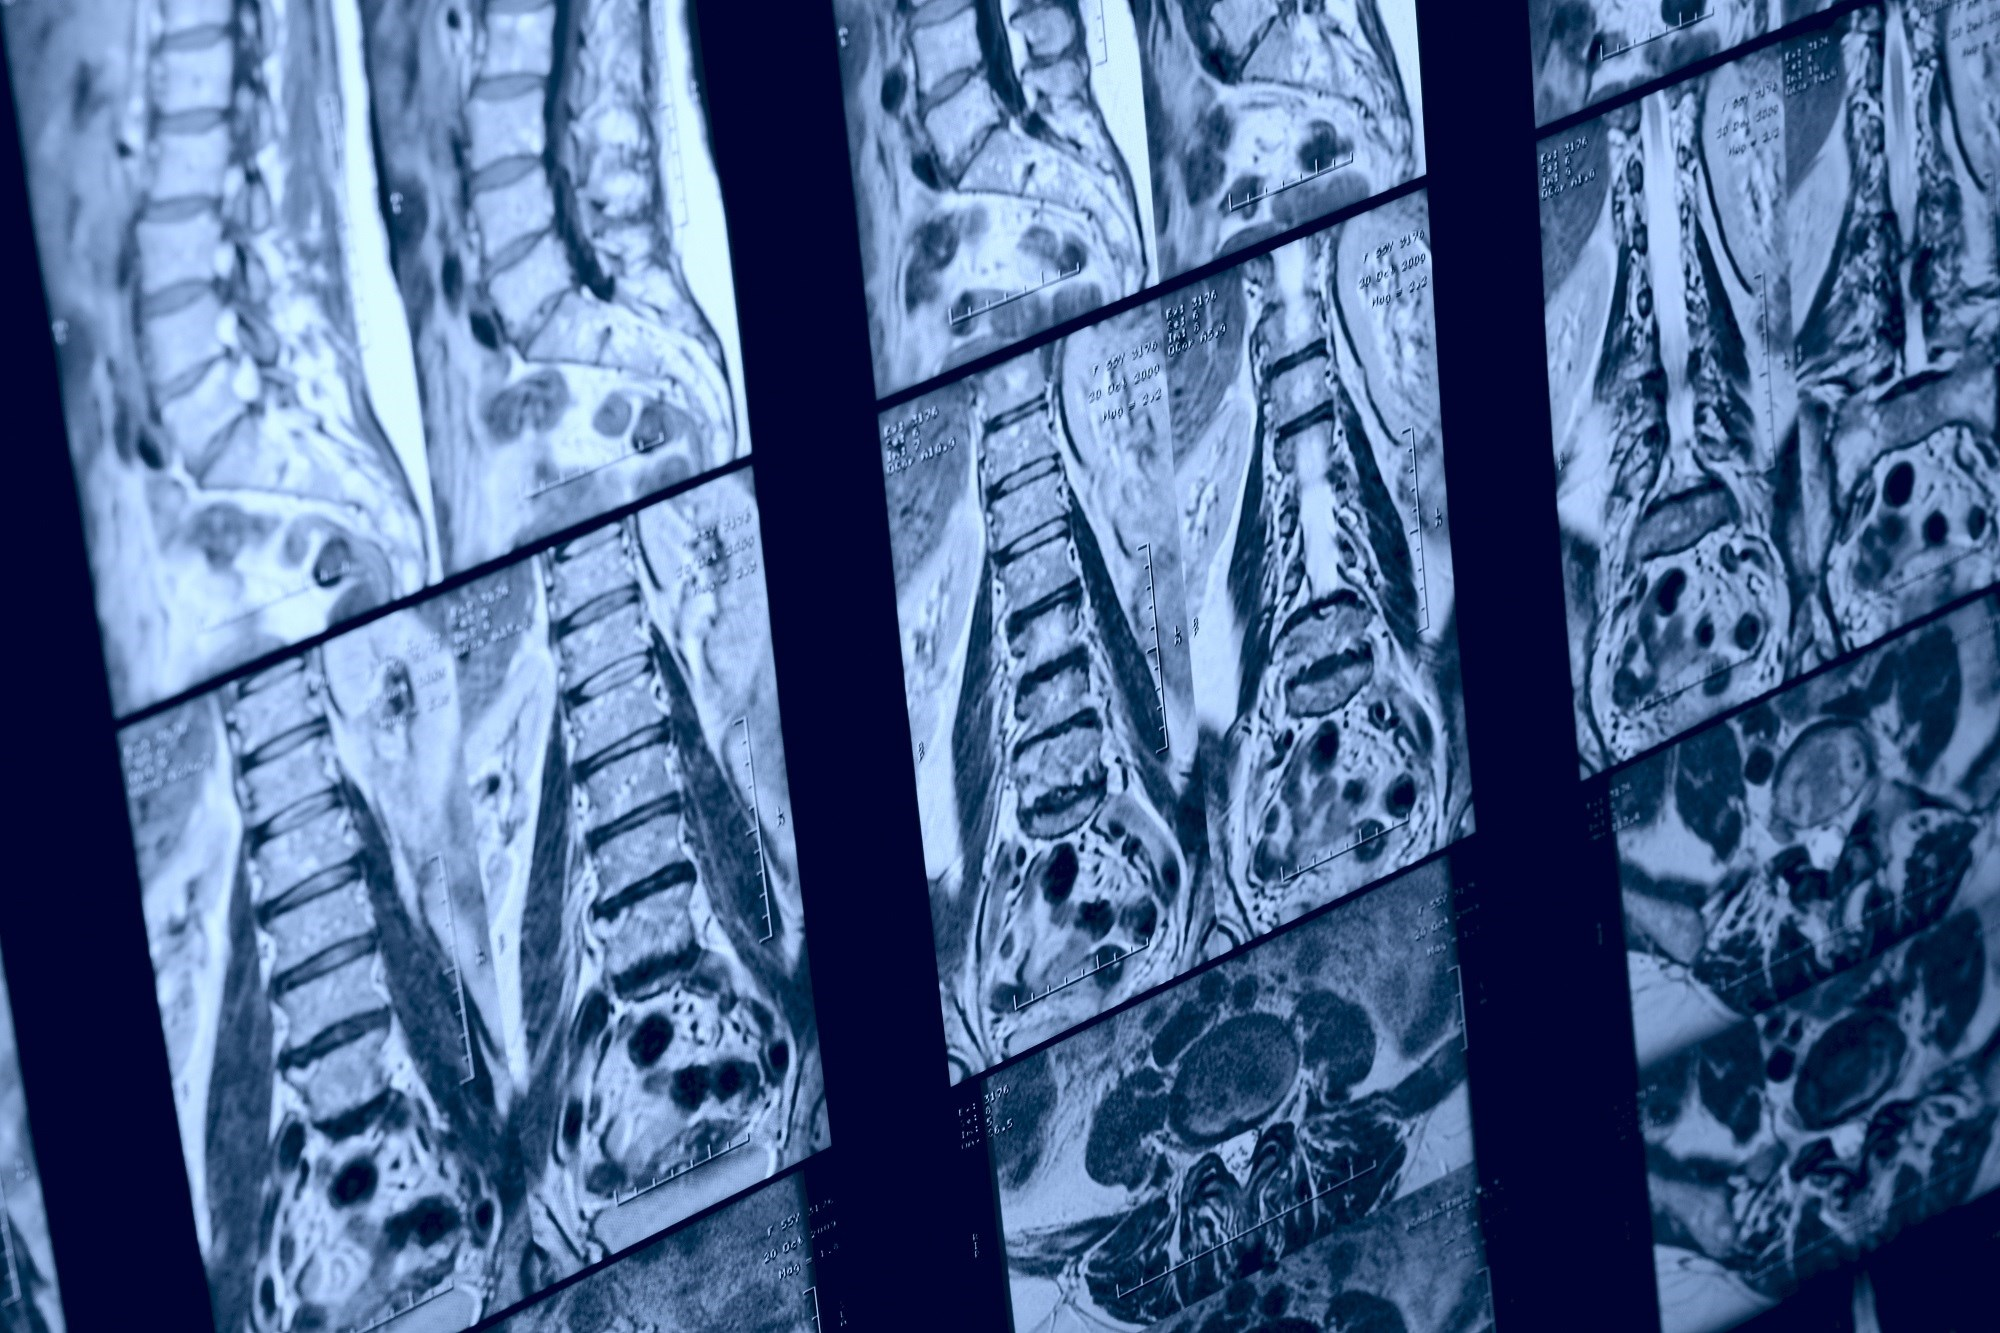 Spinal cord volume loss may be a predictor of clinical outcomes in primary progressive multiple sclerosis.